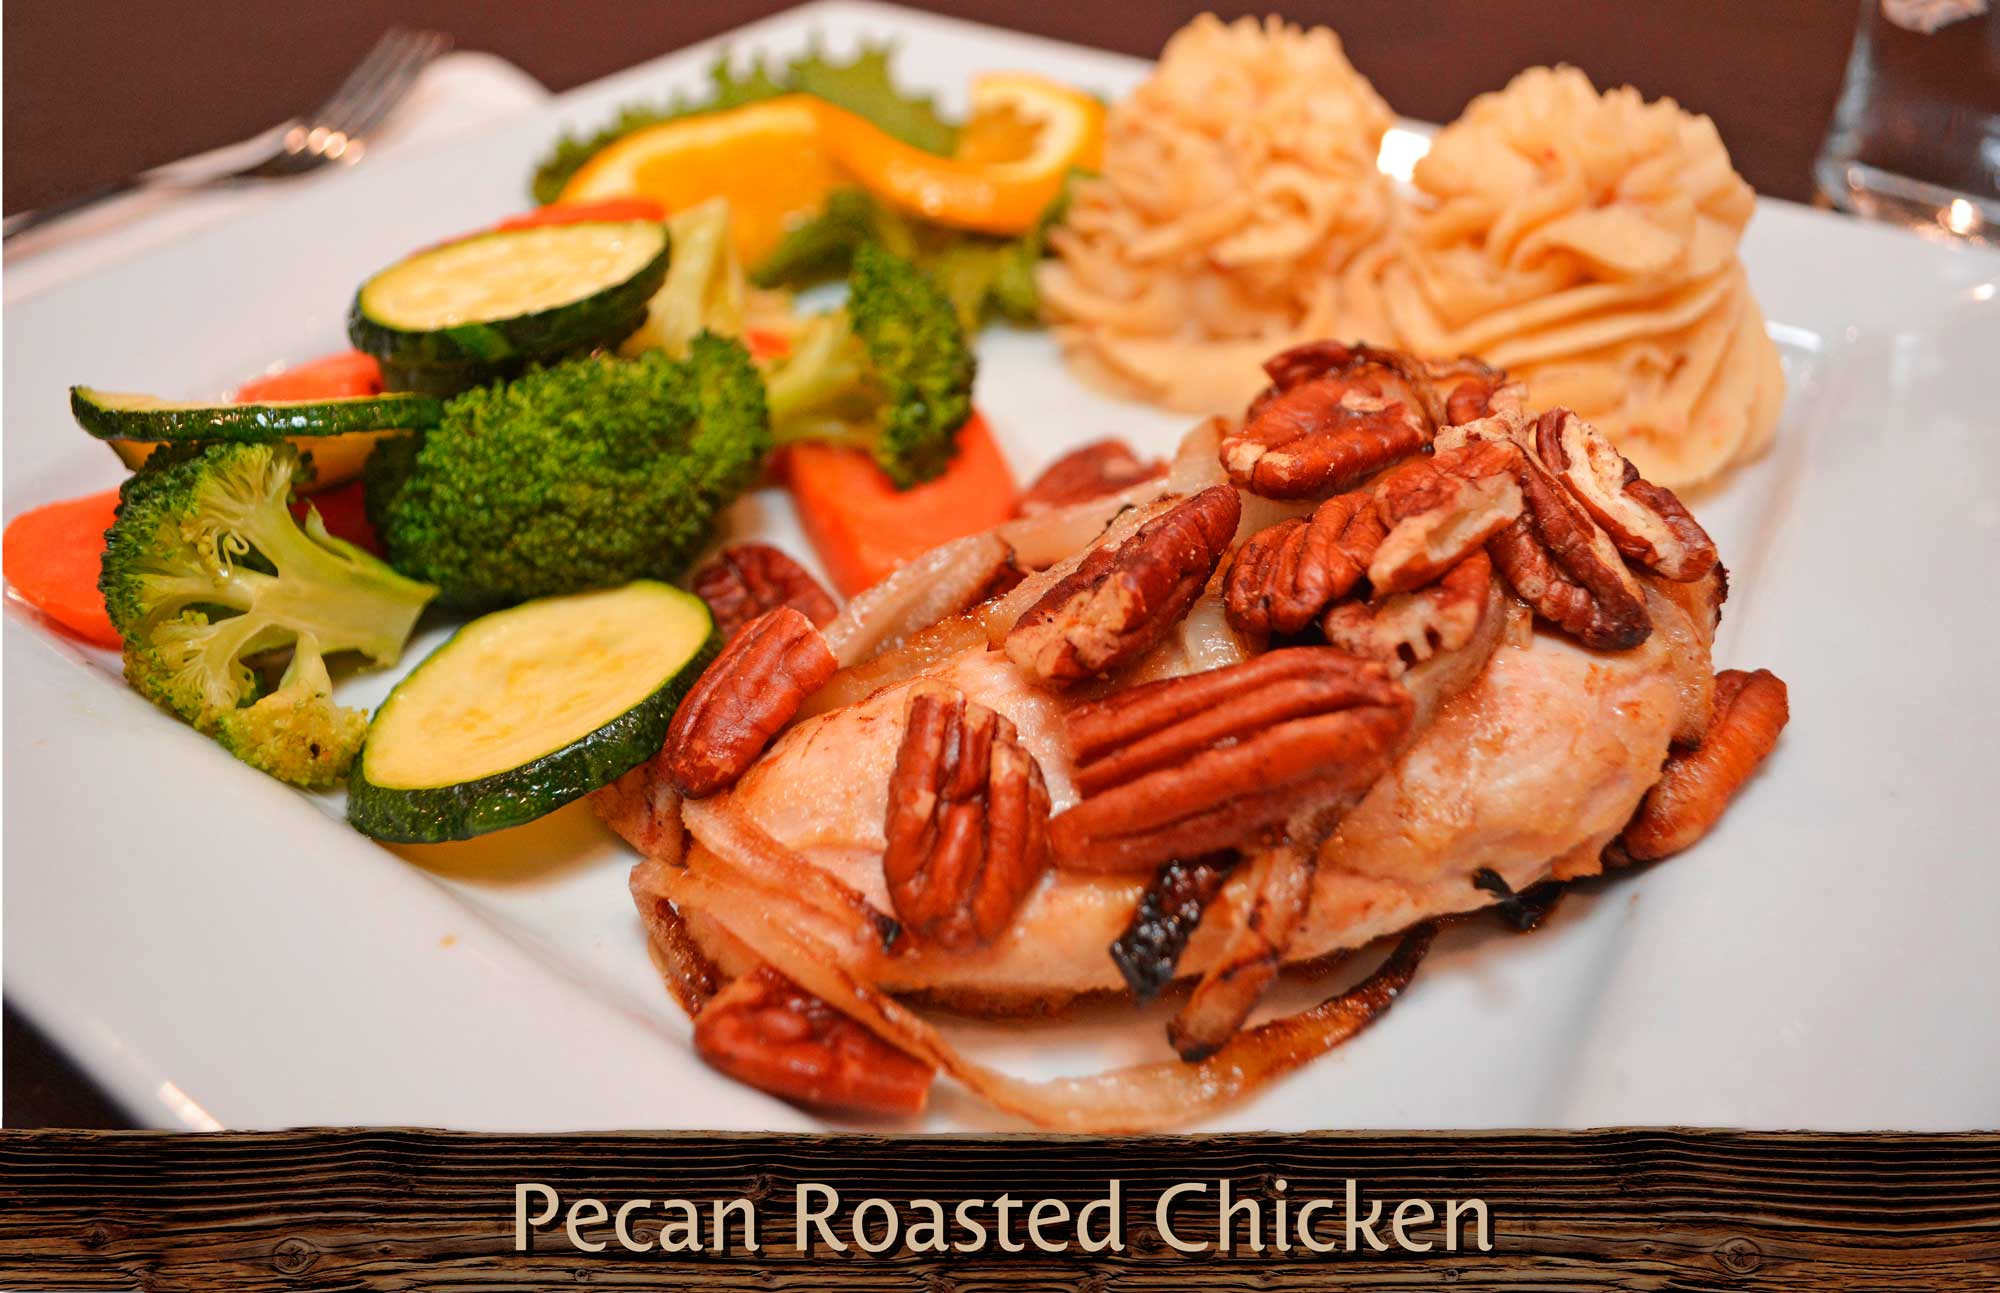 Pecan Roasted Chicken